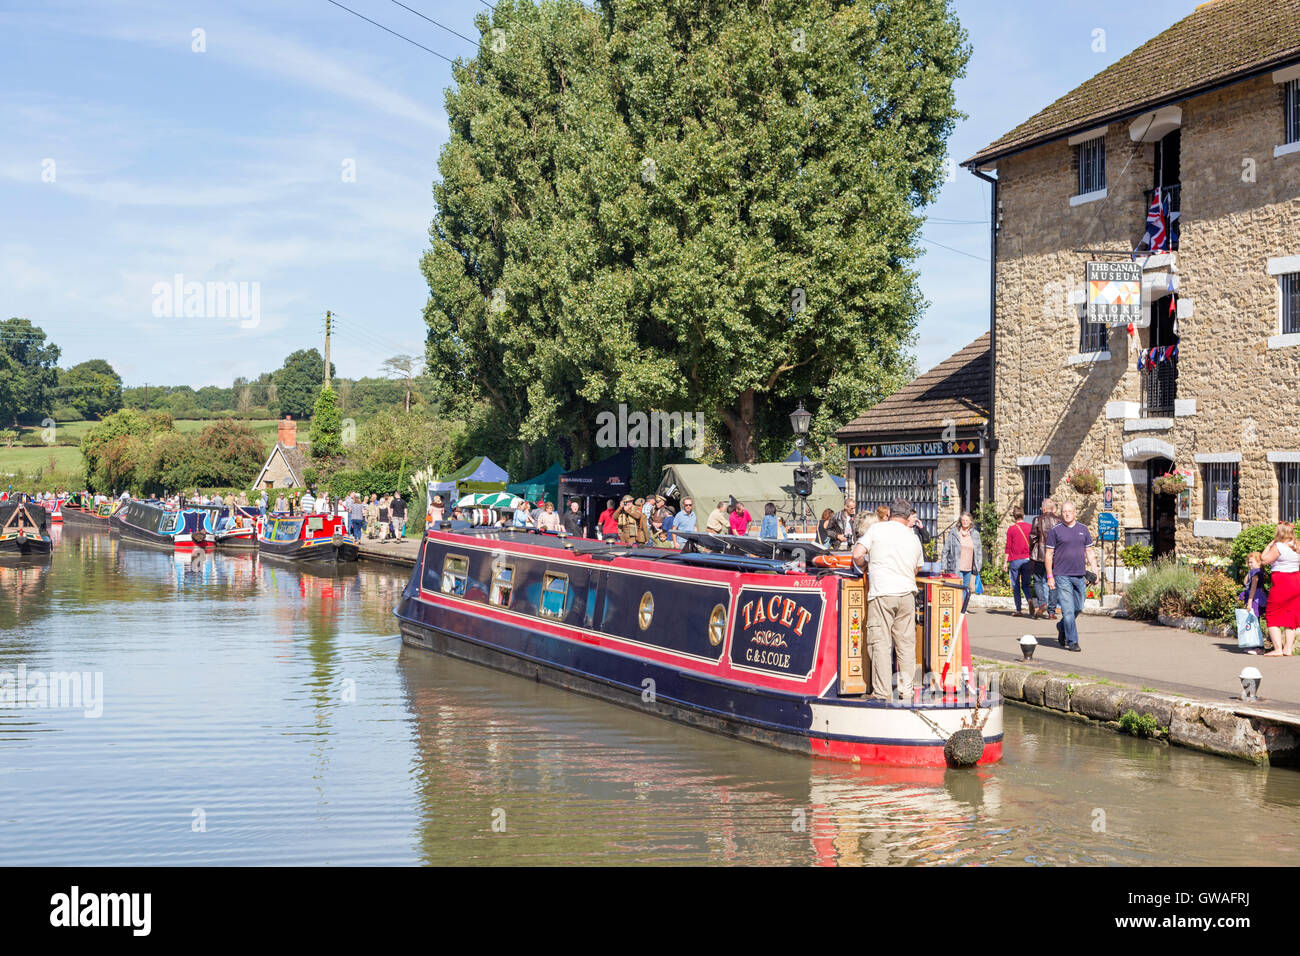 Narrowboats on the the Grand Union Canal at Stoke Bruerne, Northamptonshire, England, UK - Stock Image